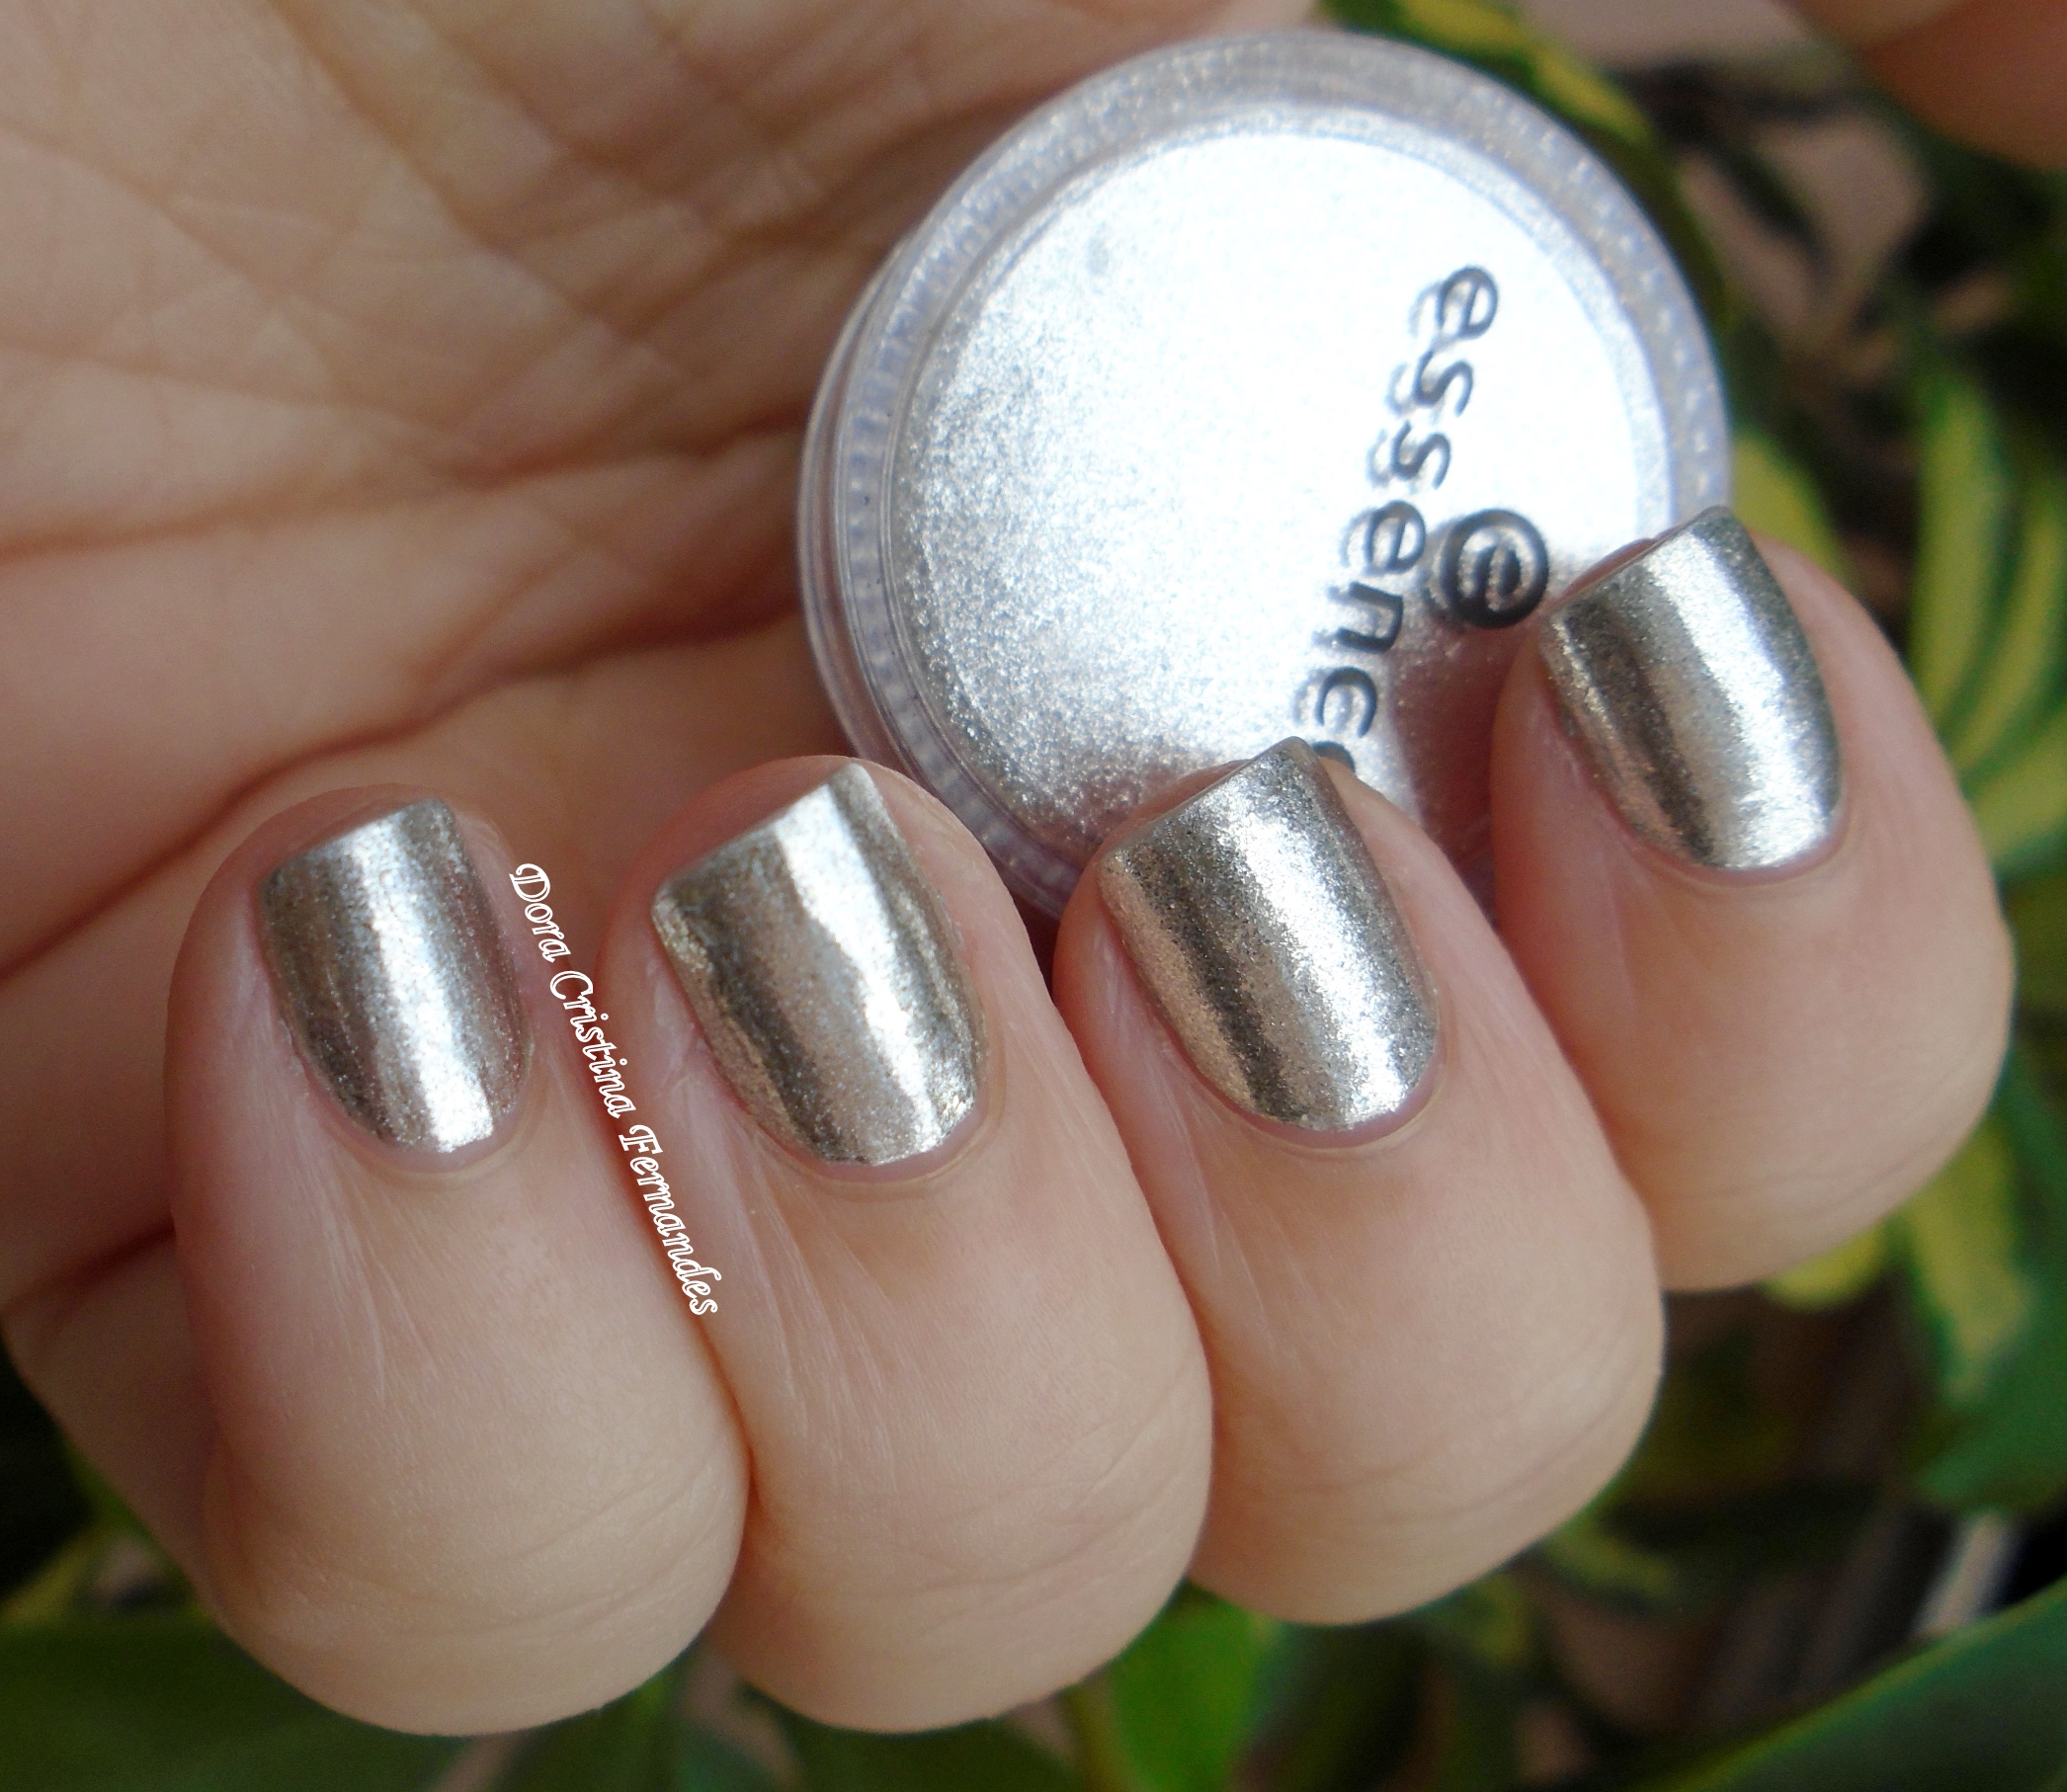 Essence%20blossom%20dreamns%20nail%20pigment%20mirror%2c%20mirror%20on%20my%20nails%20%2b%20sensinity%2058%20%2b%20essence%20blossom%20set%20the%20look%20waterbased%20tc